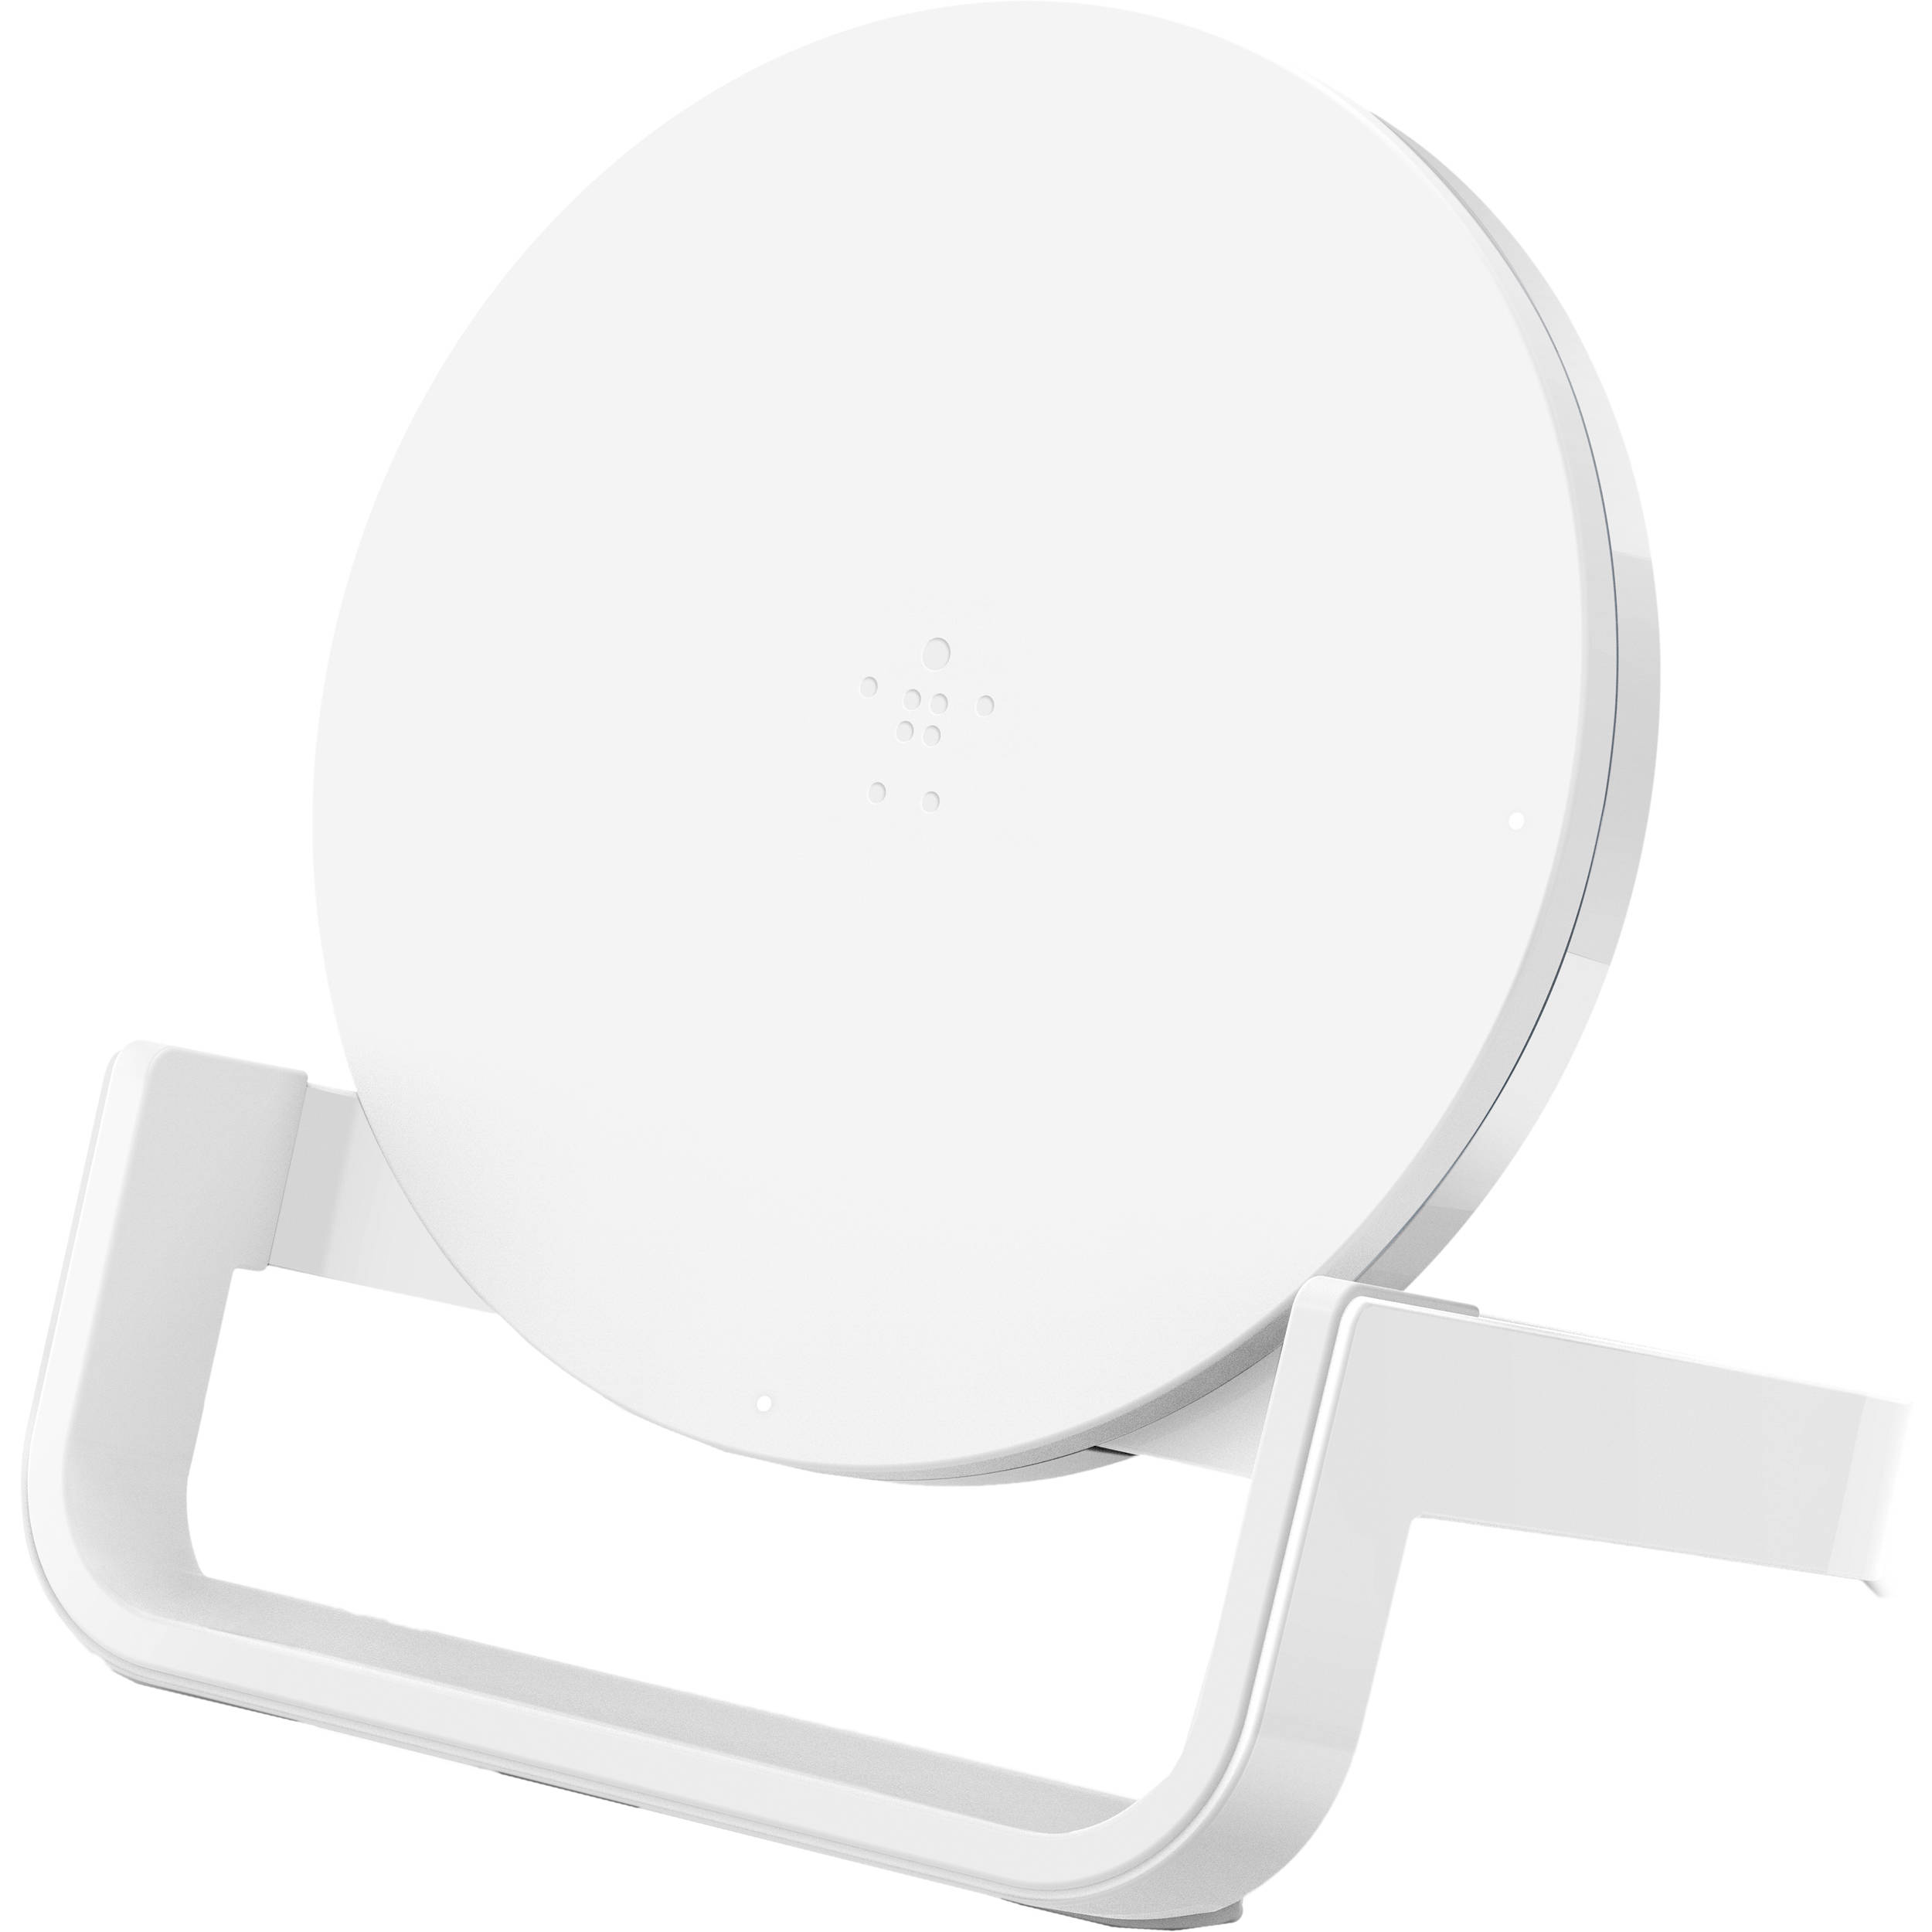 Belkin BOOSTUP 10W Wireless Charging Stand (White)